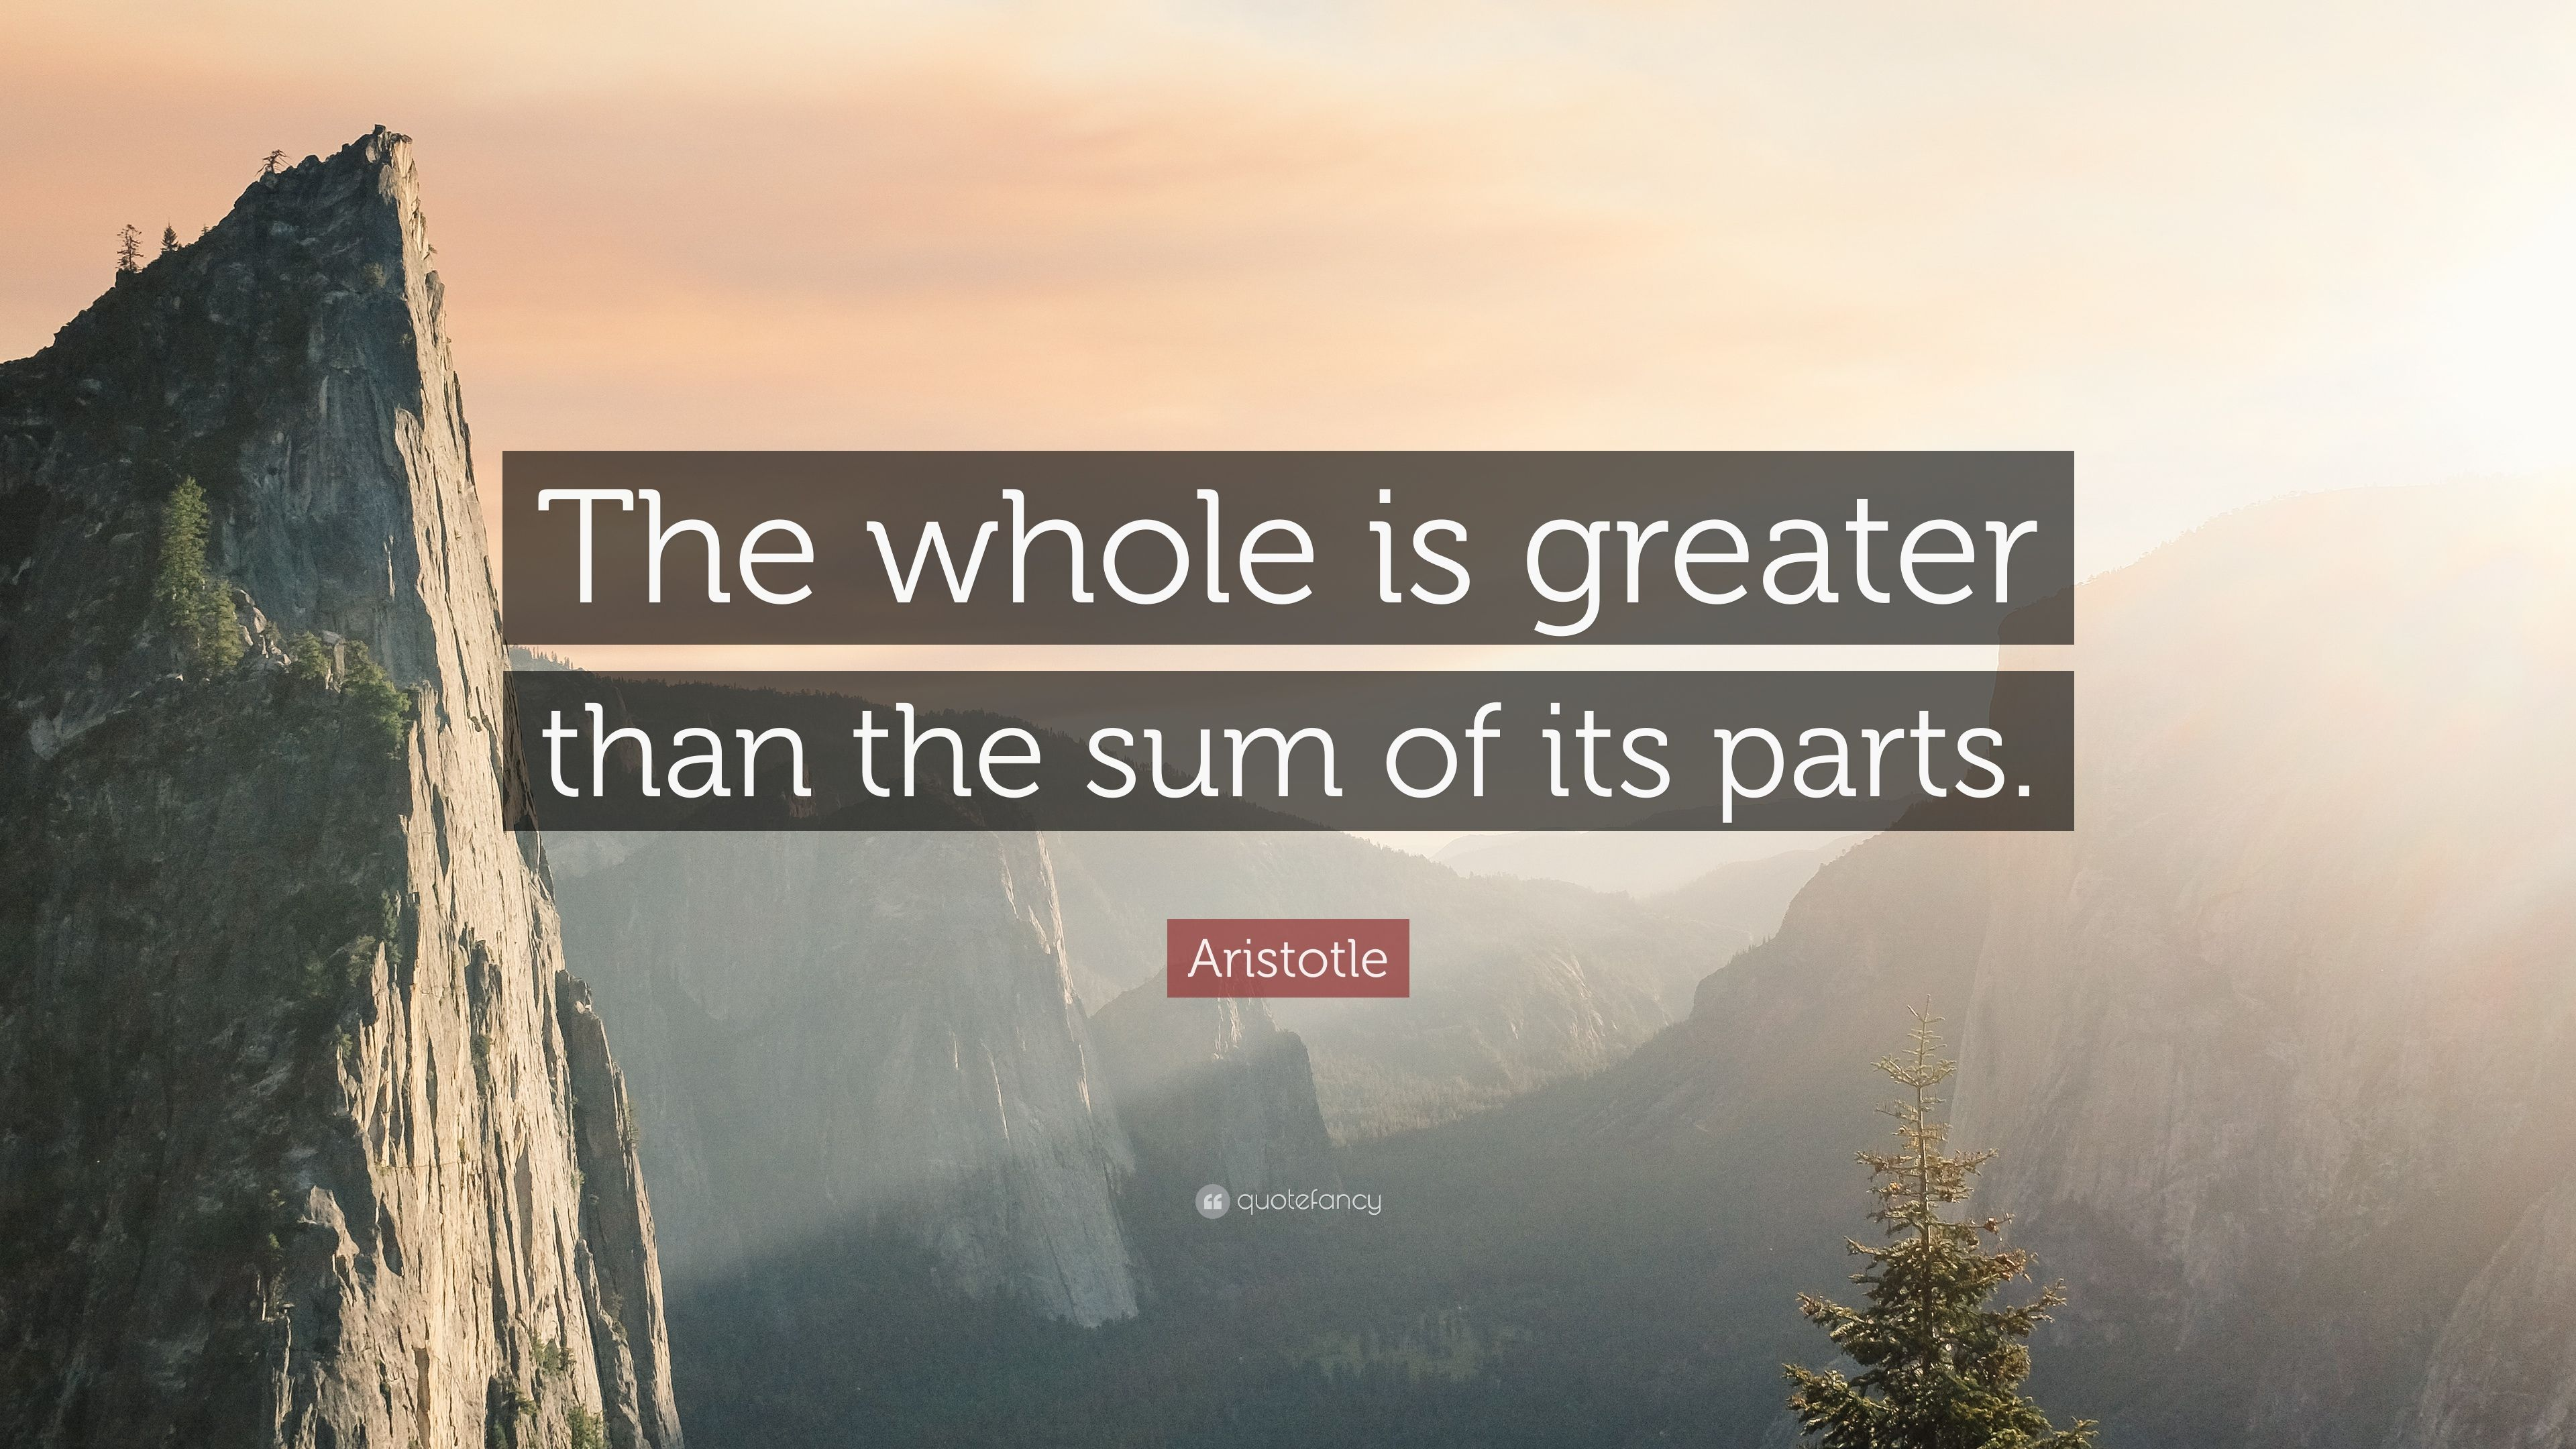 Image Result For The Whole Is Greater Than The Sum Of Its Parts